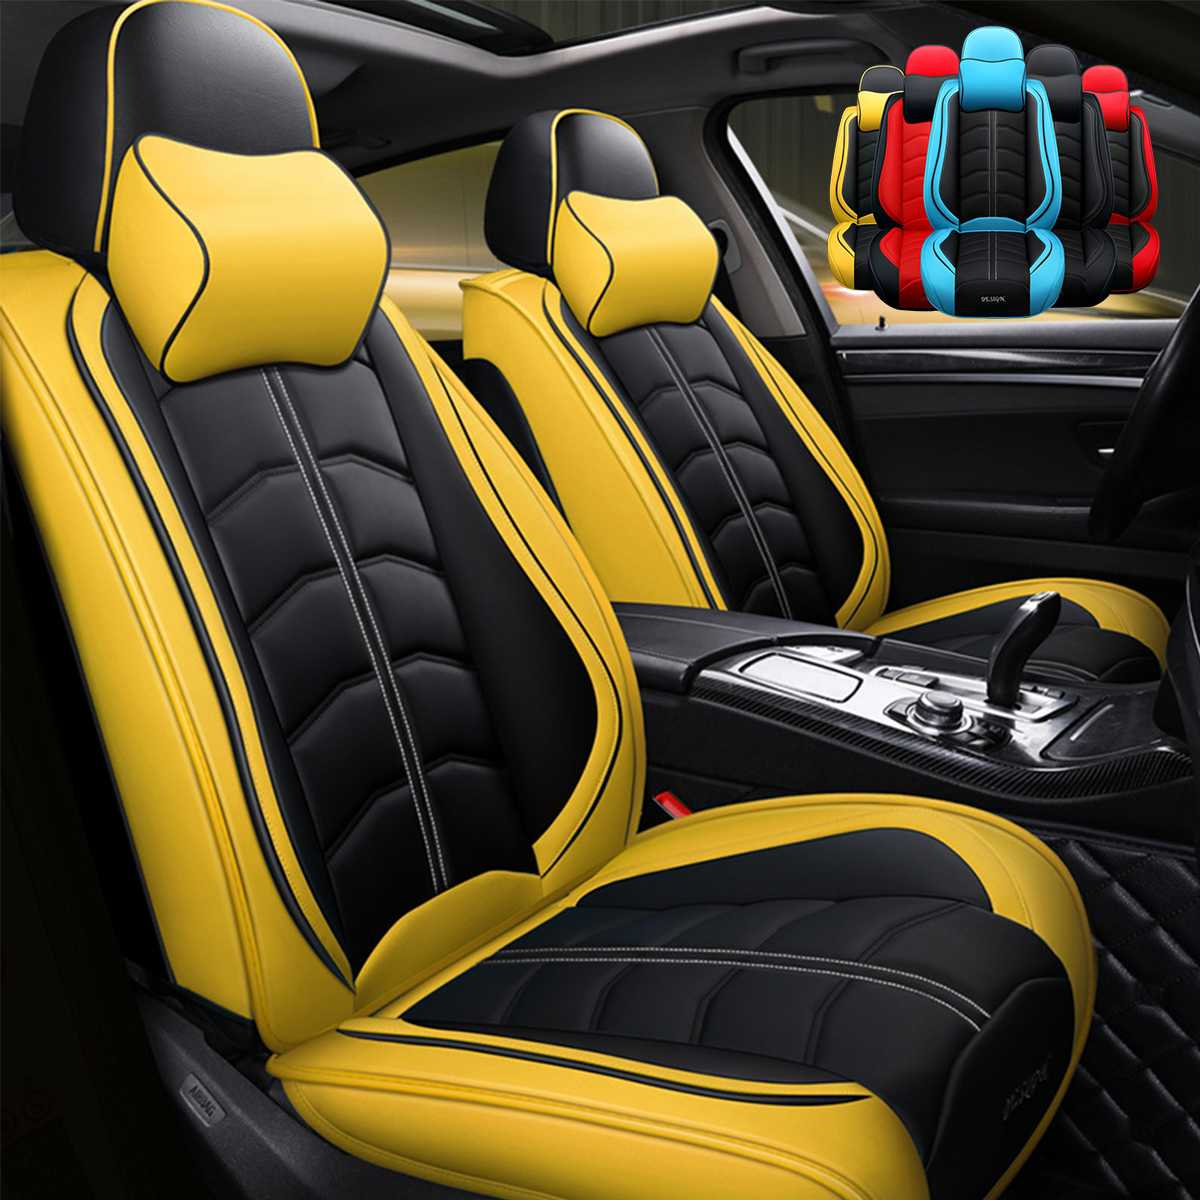 Driving Luxury Car: Universal Luxury Car Seat Cover Leather Cotton Breathable